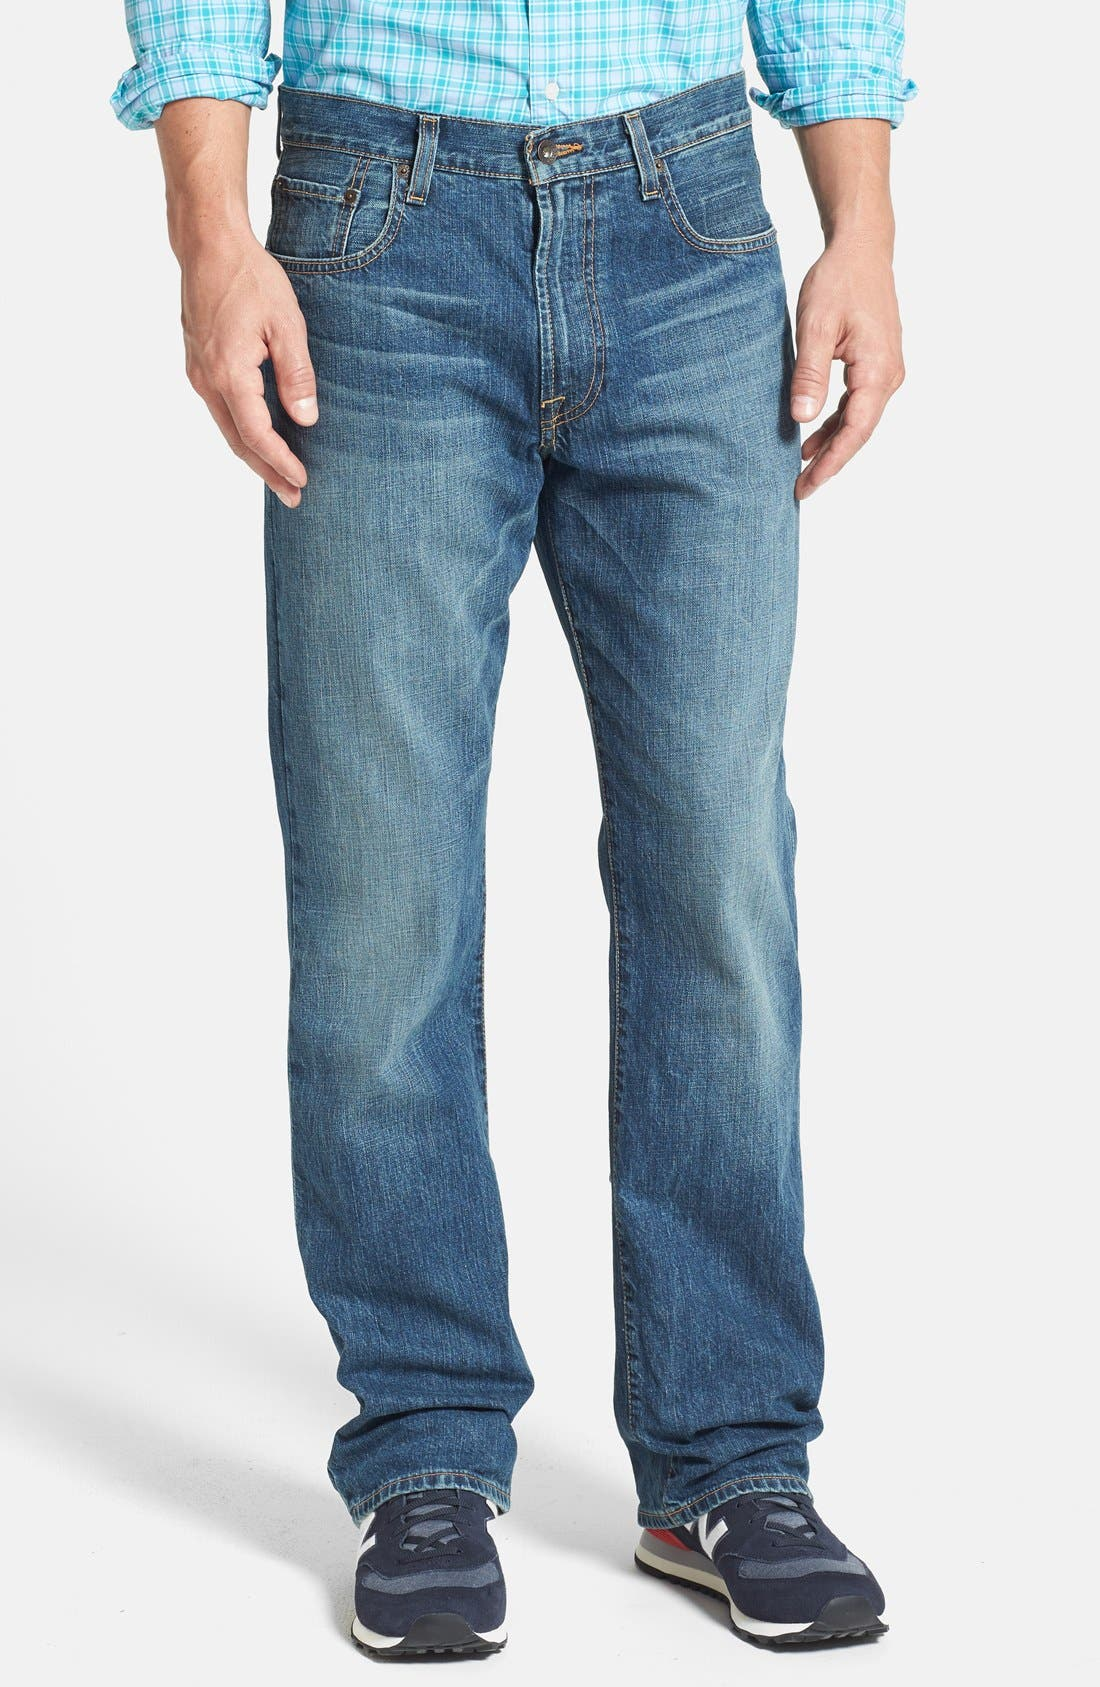 Main Image - Lucky Brand '181' Relaxed Fit Jeans (Dellwood) (Online Only)